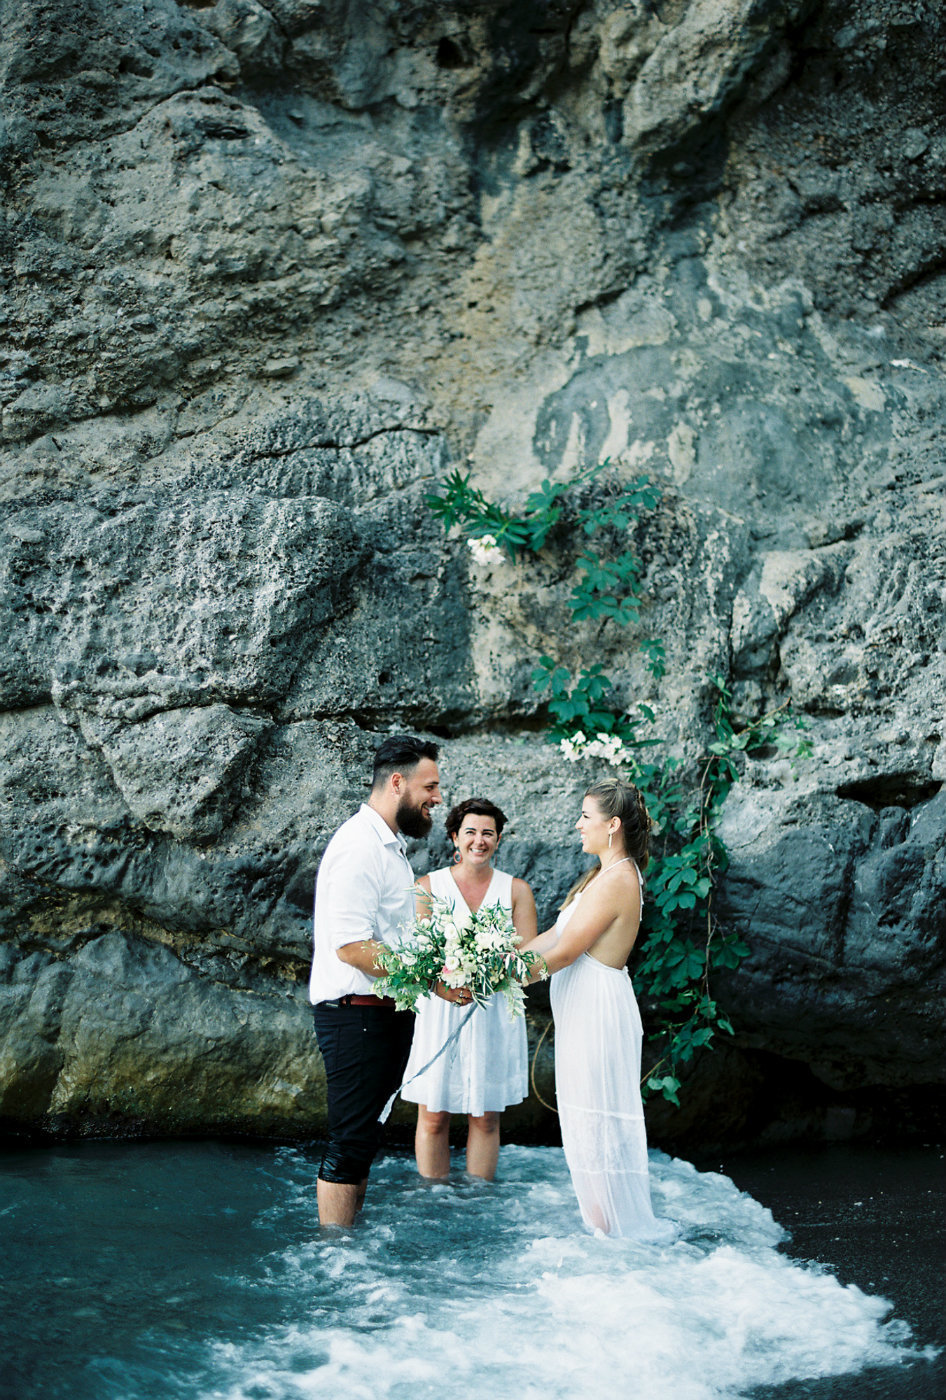 positano_italy_elopement_melanie_gabrielle_photography_102